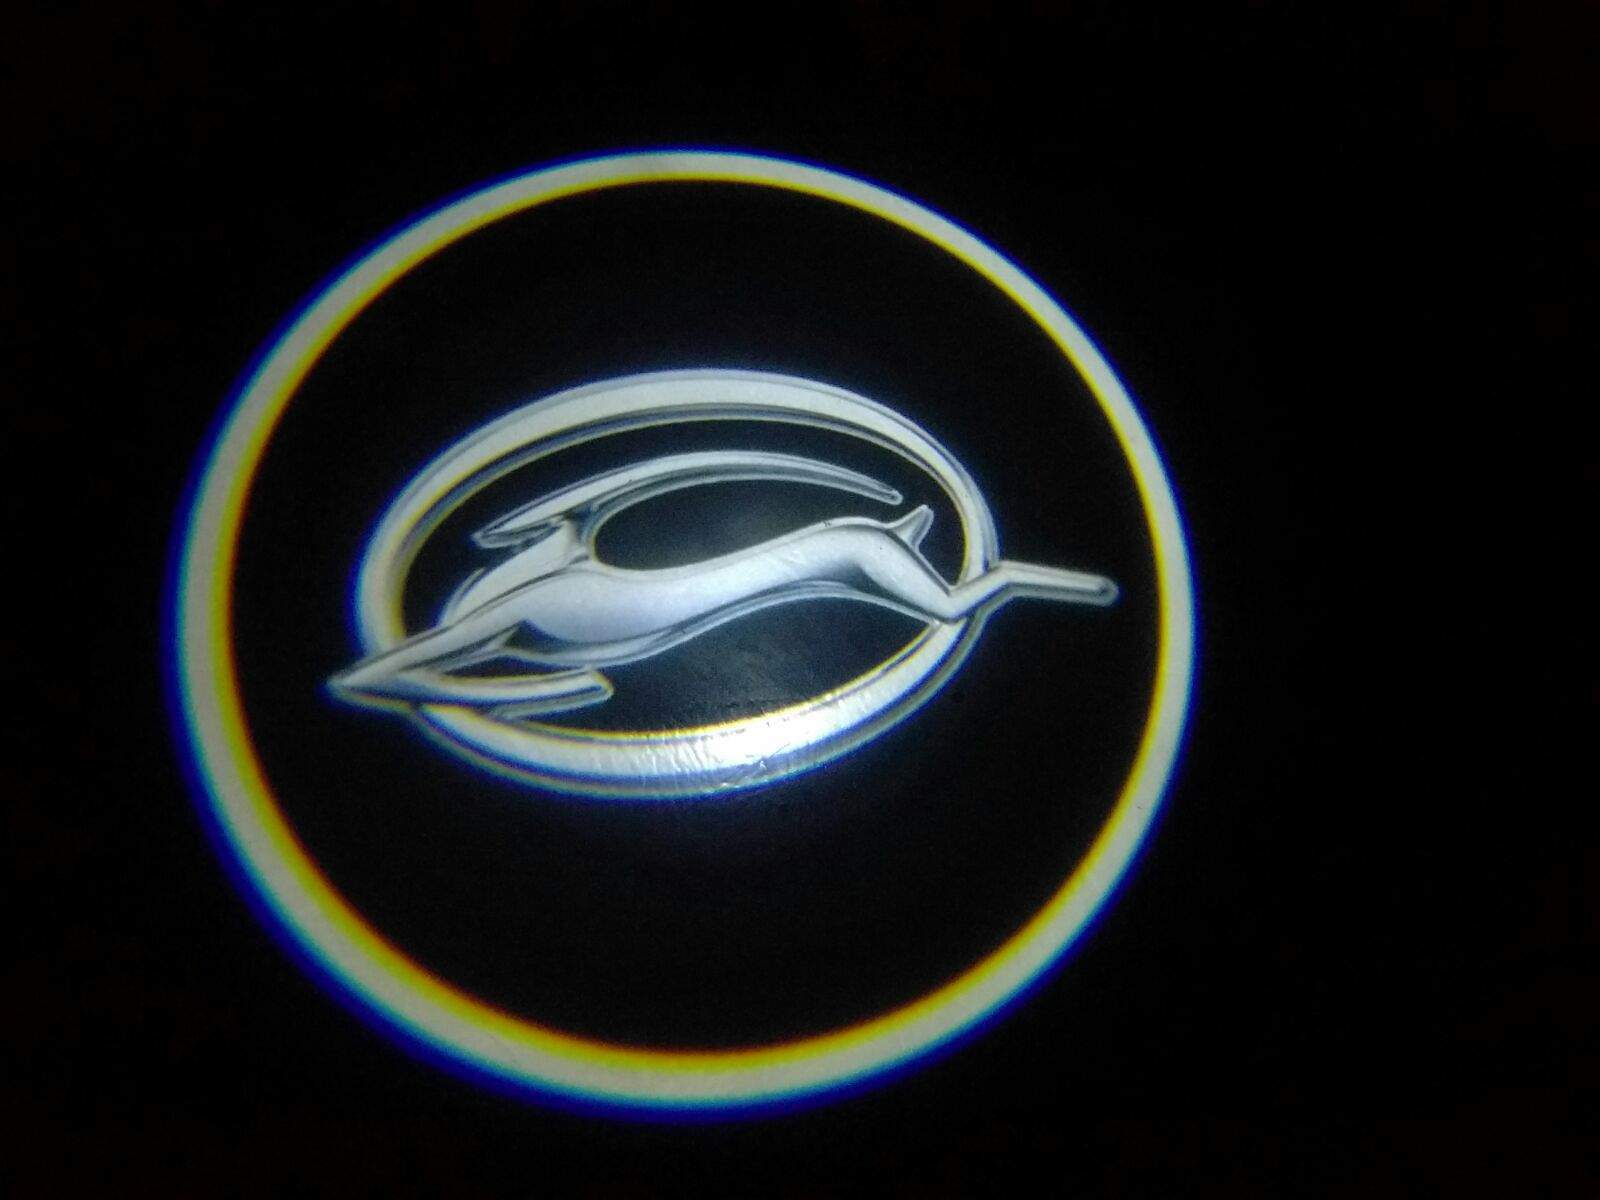 Light Projector Chevy Impala Door Projector Courtesy Puddle Logo Light